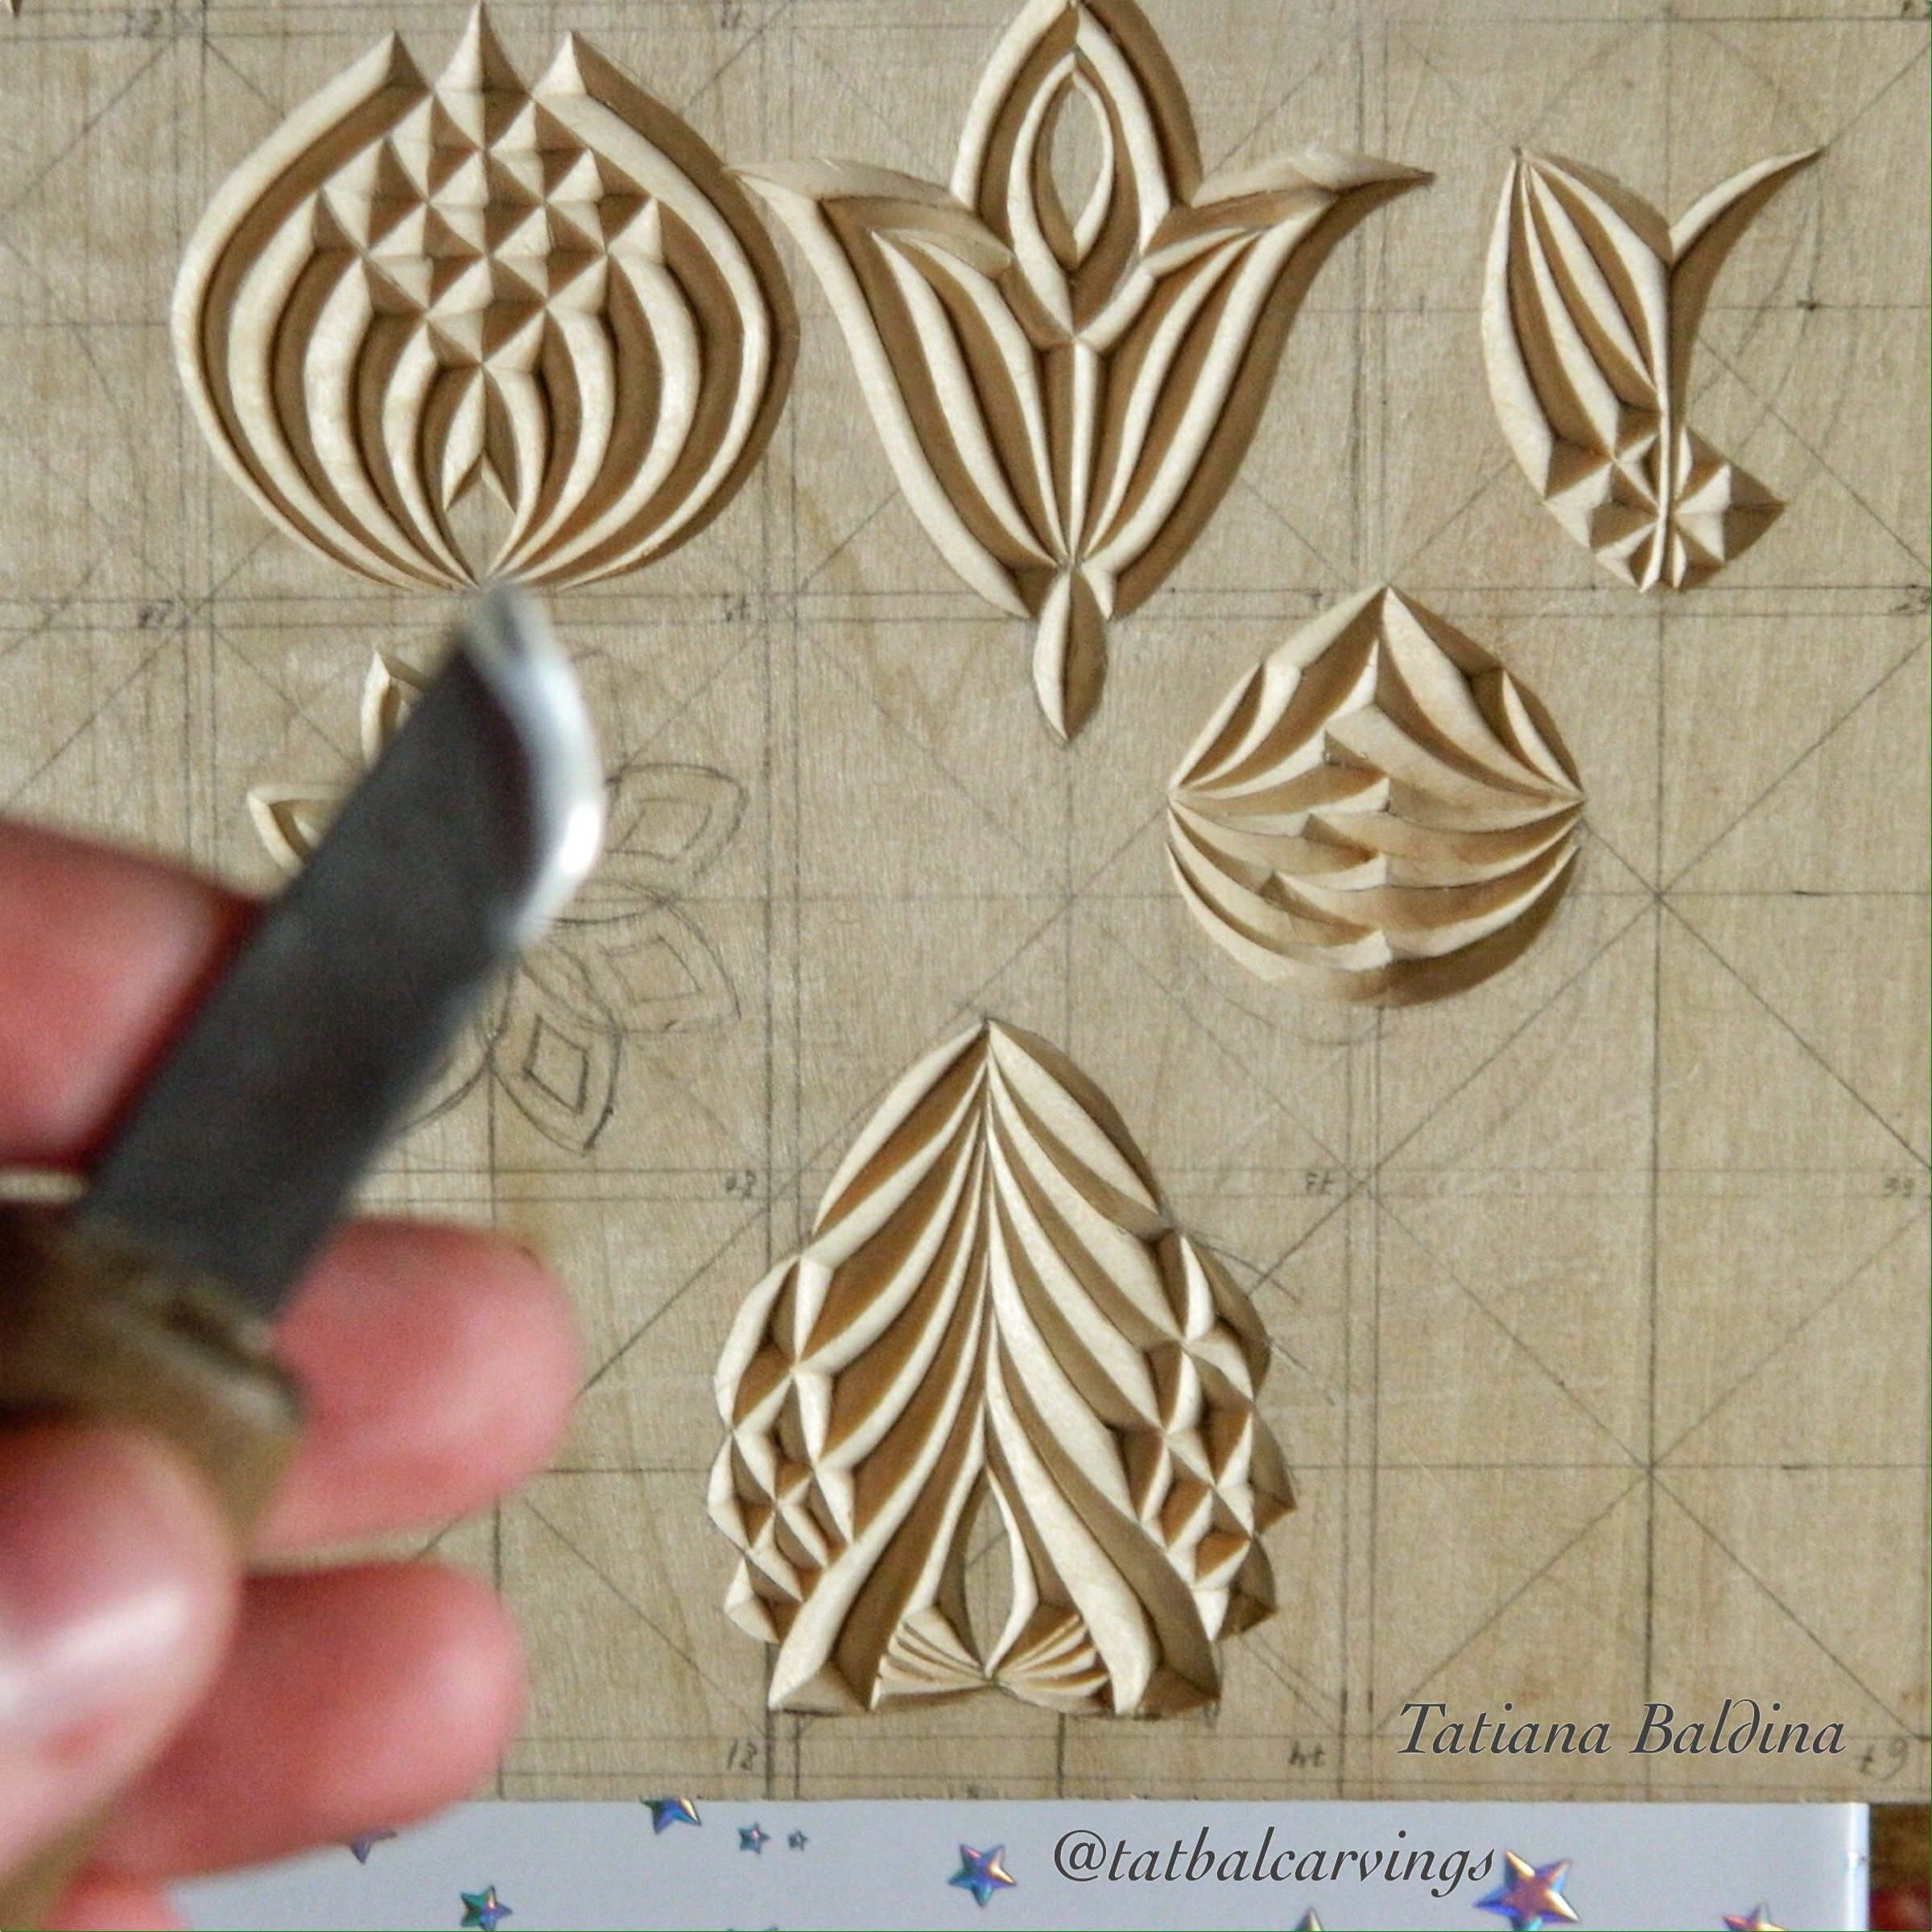 Chip carving patterns practice pdf